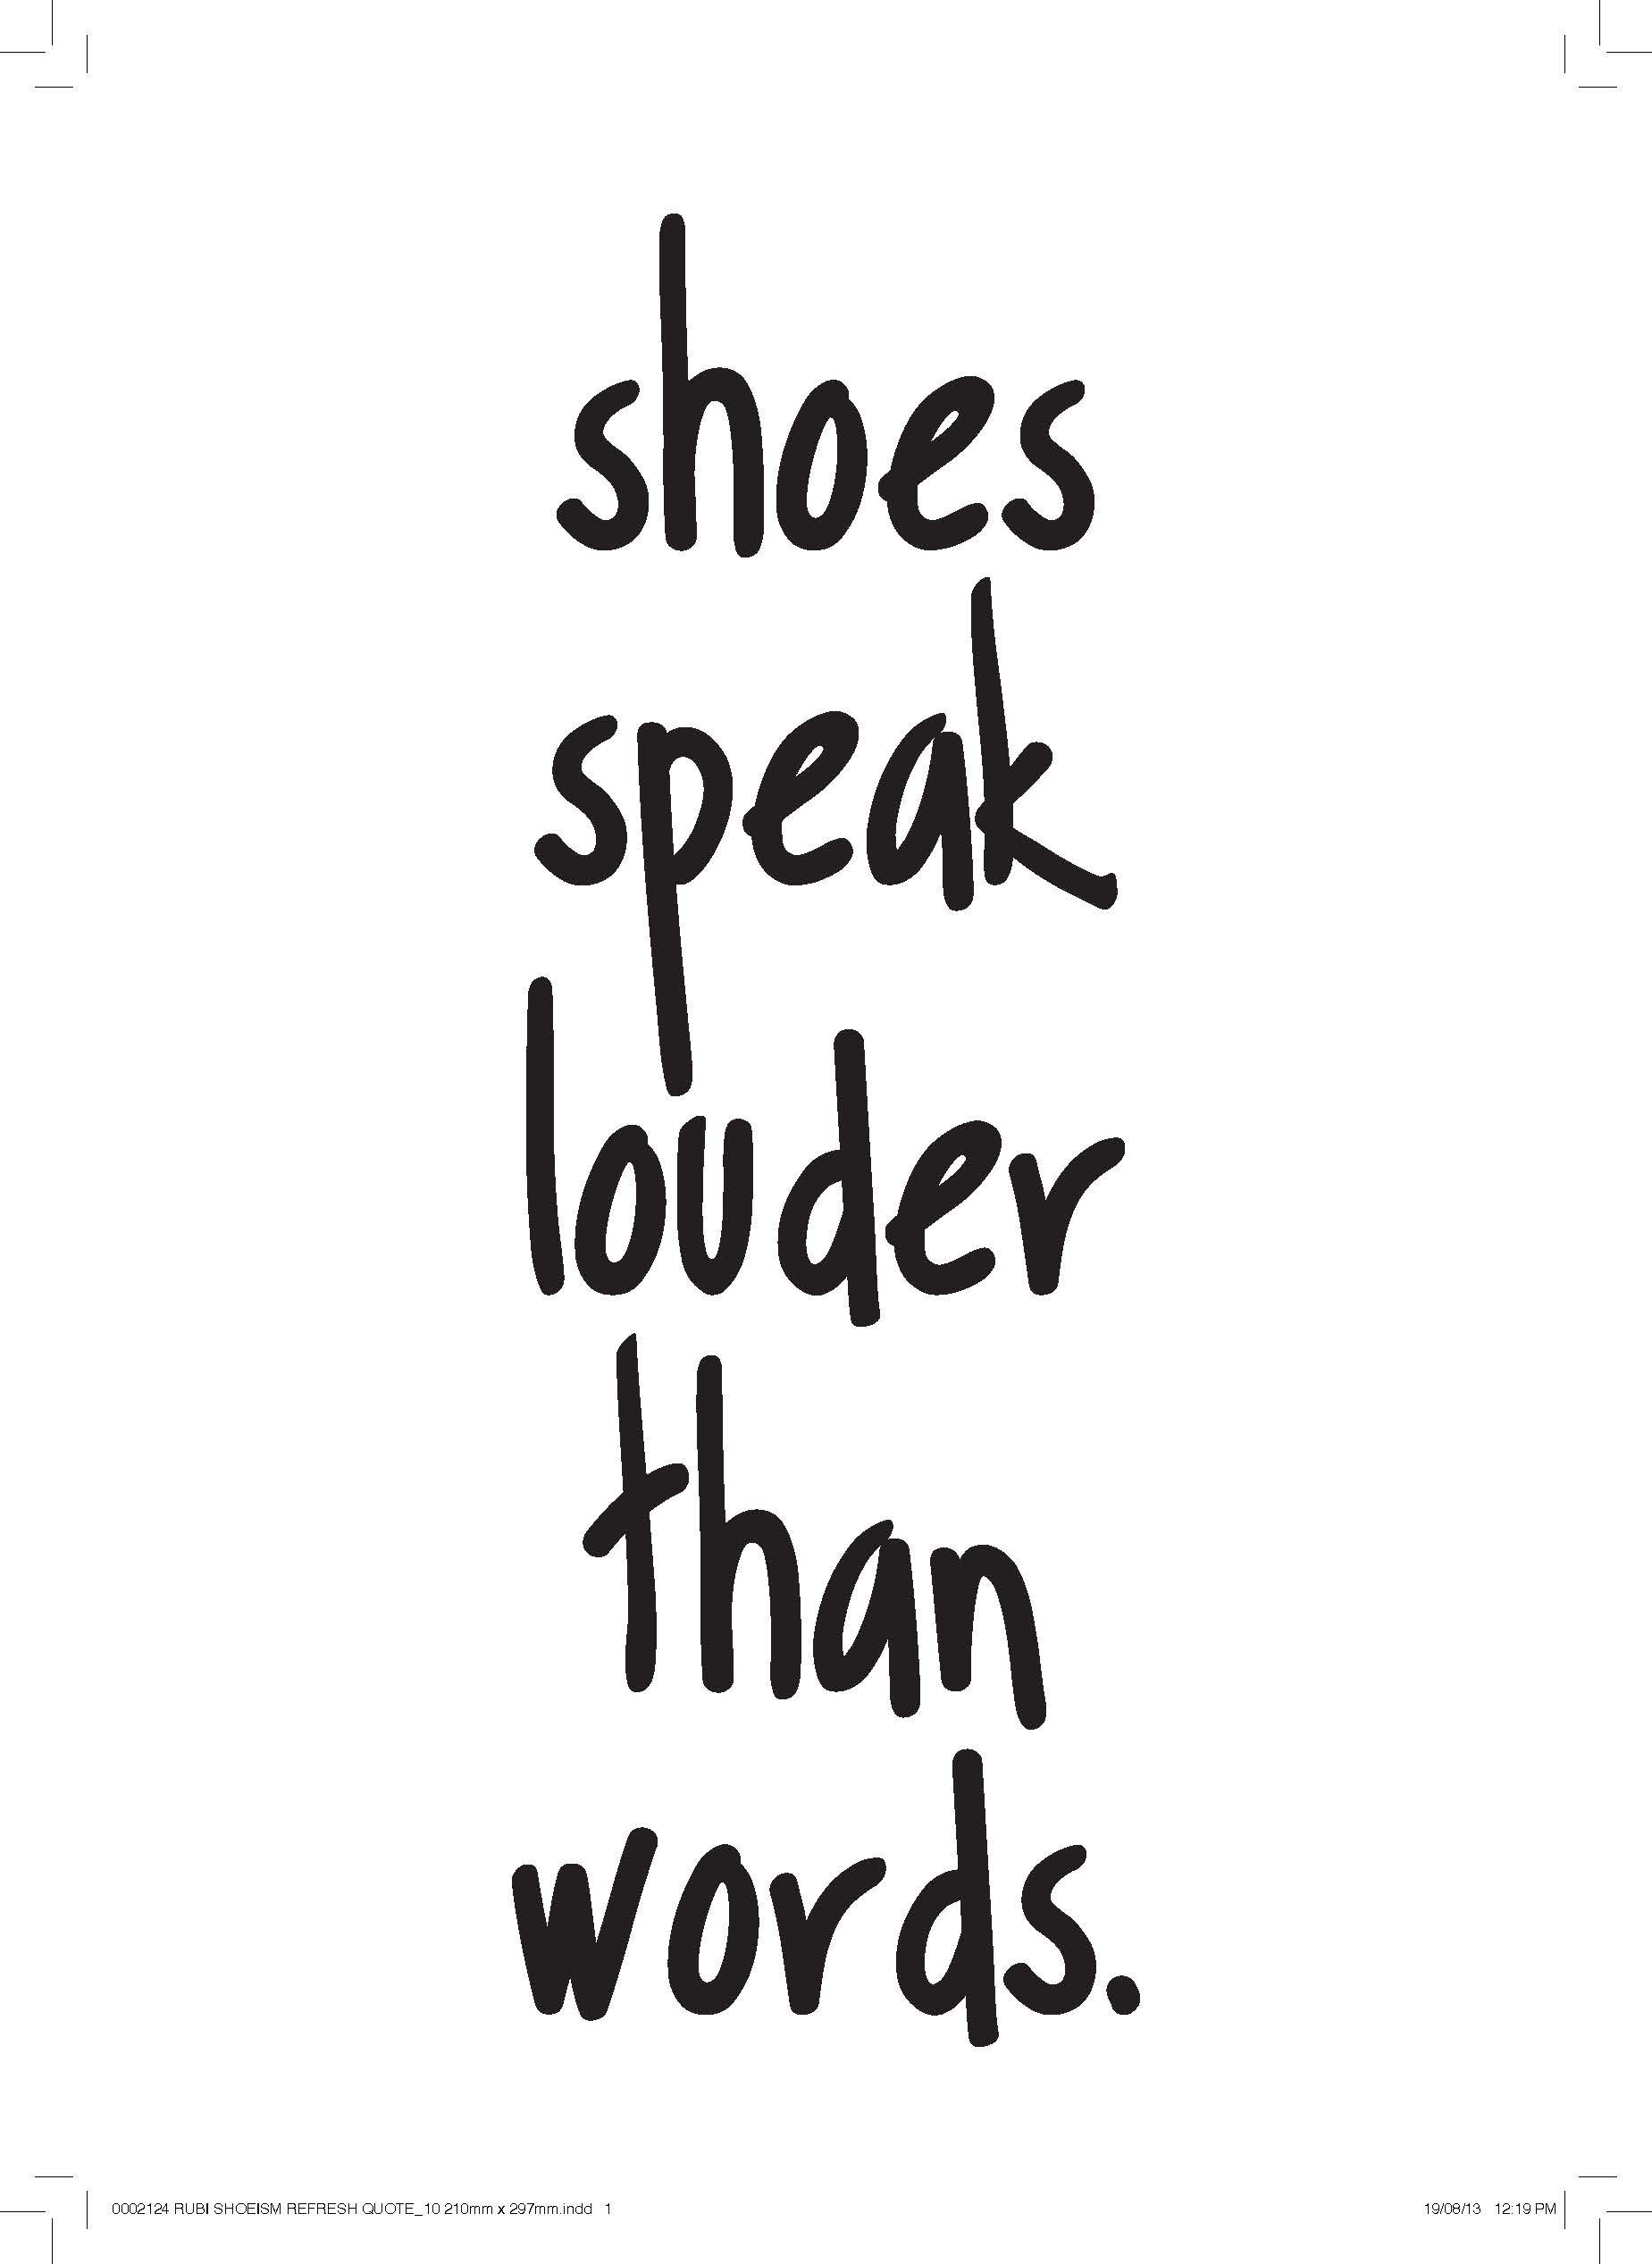 heels and sneakers quotes - photo #12